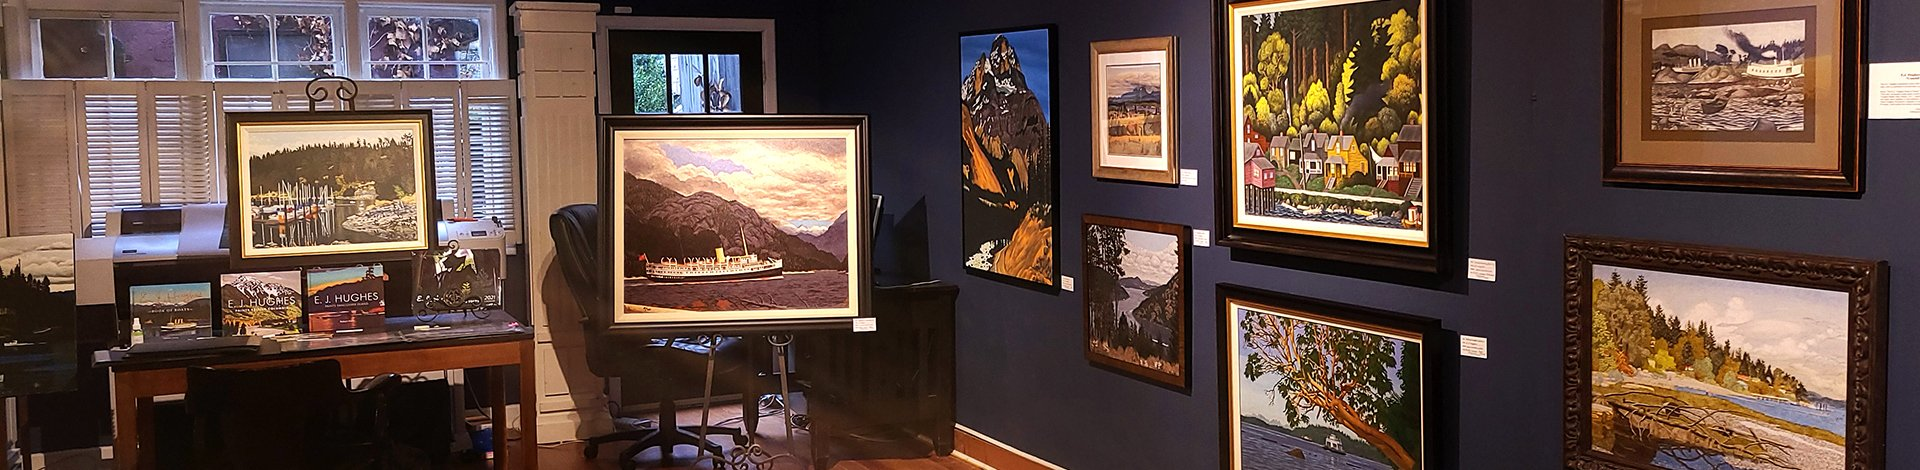 Ej Hughes Gallery and Books - Duncan BC